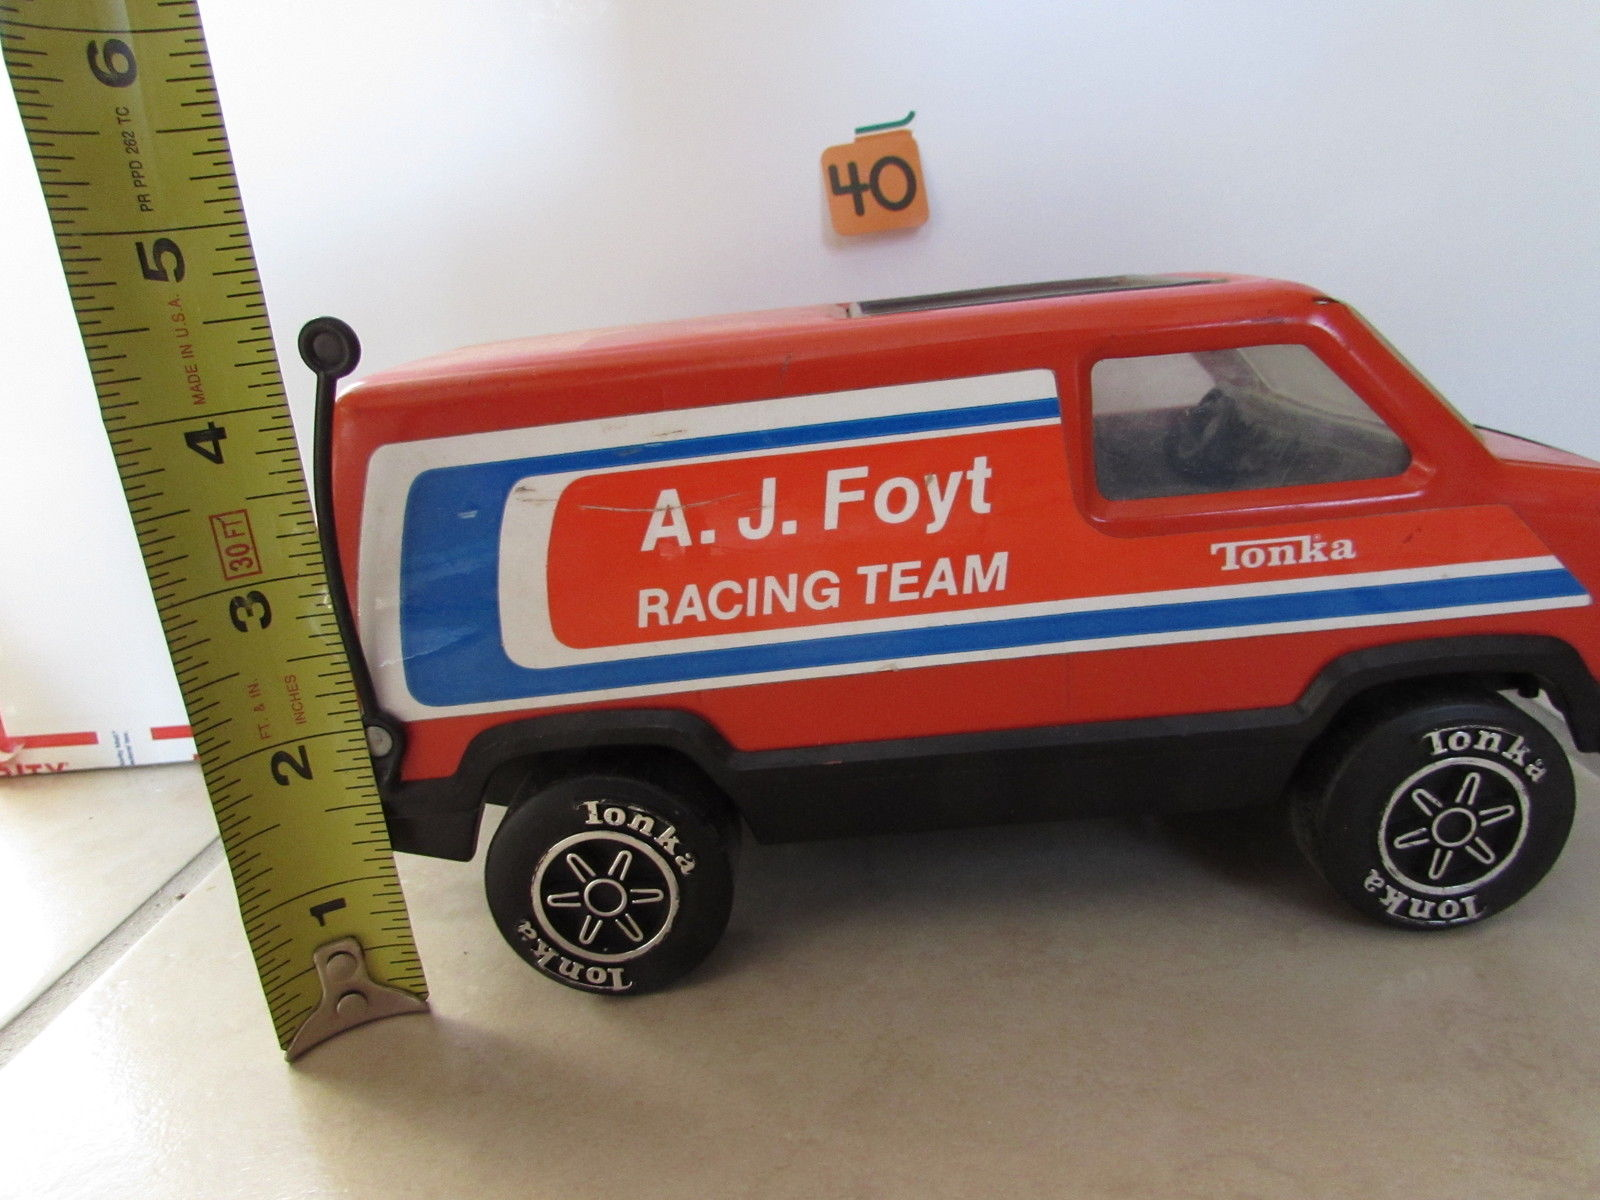 A.J FOYT RACING TEAM TONKA - LOOSE